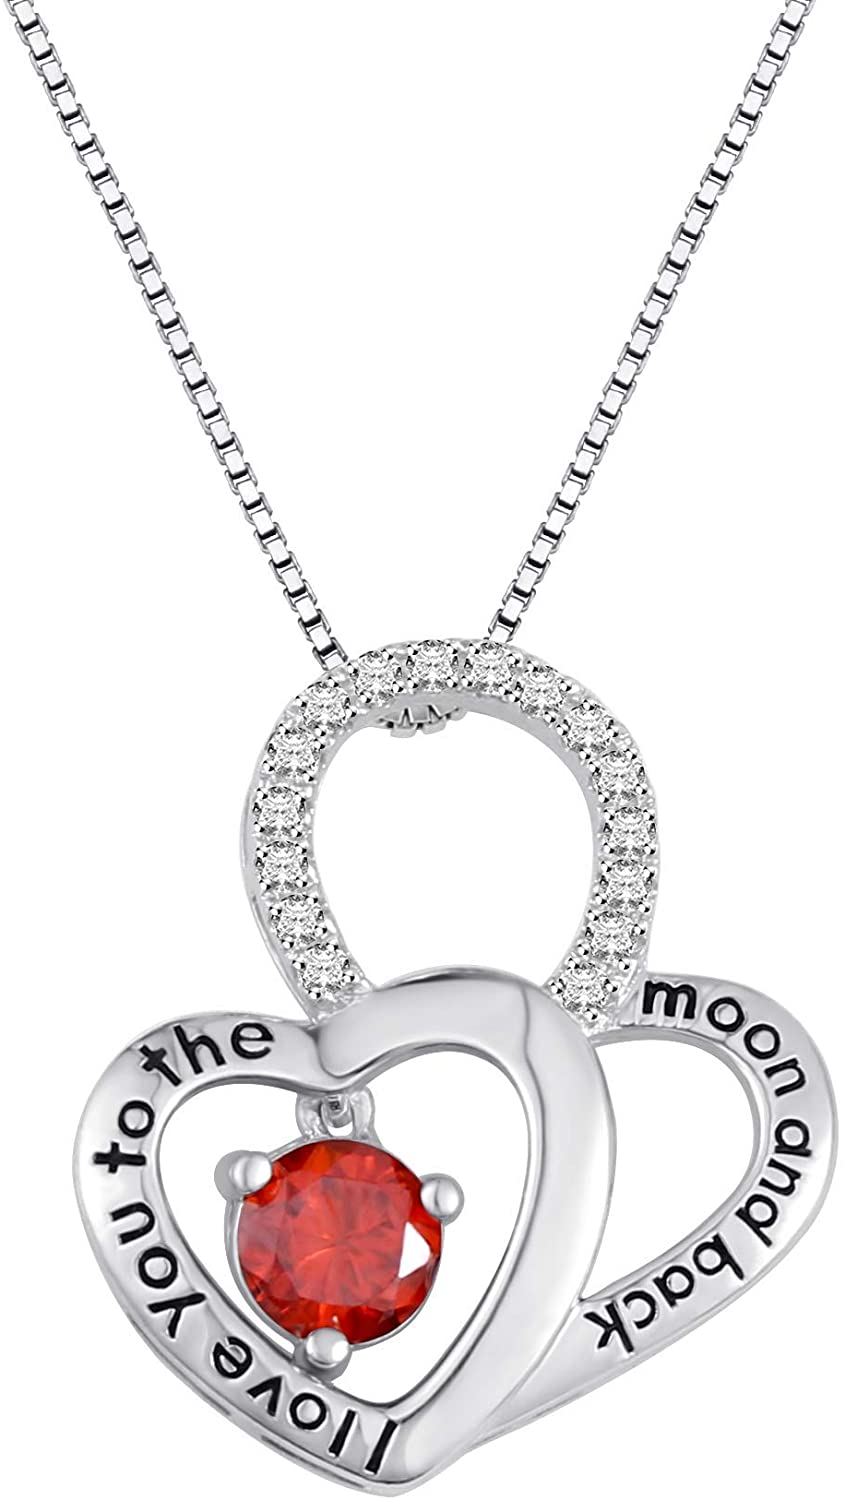 Getname Necklace Personalized Birthstones Necklace L Love You to The Moon and Back Twist Heart Pendent Mother Jewelry